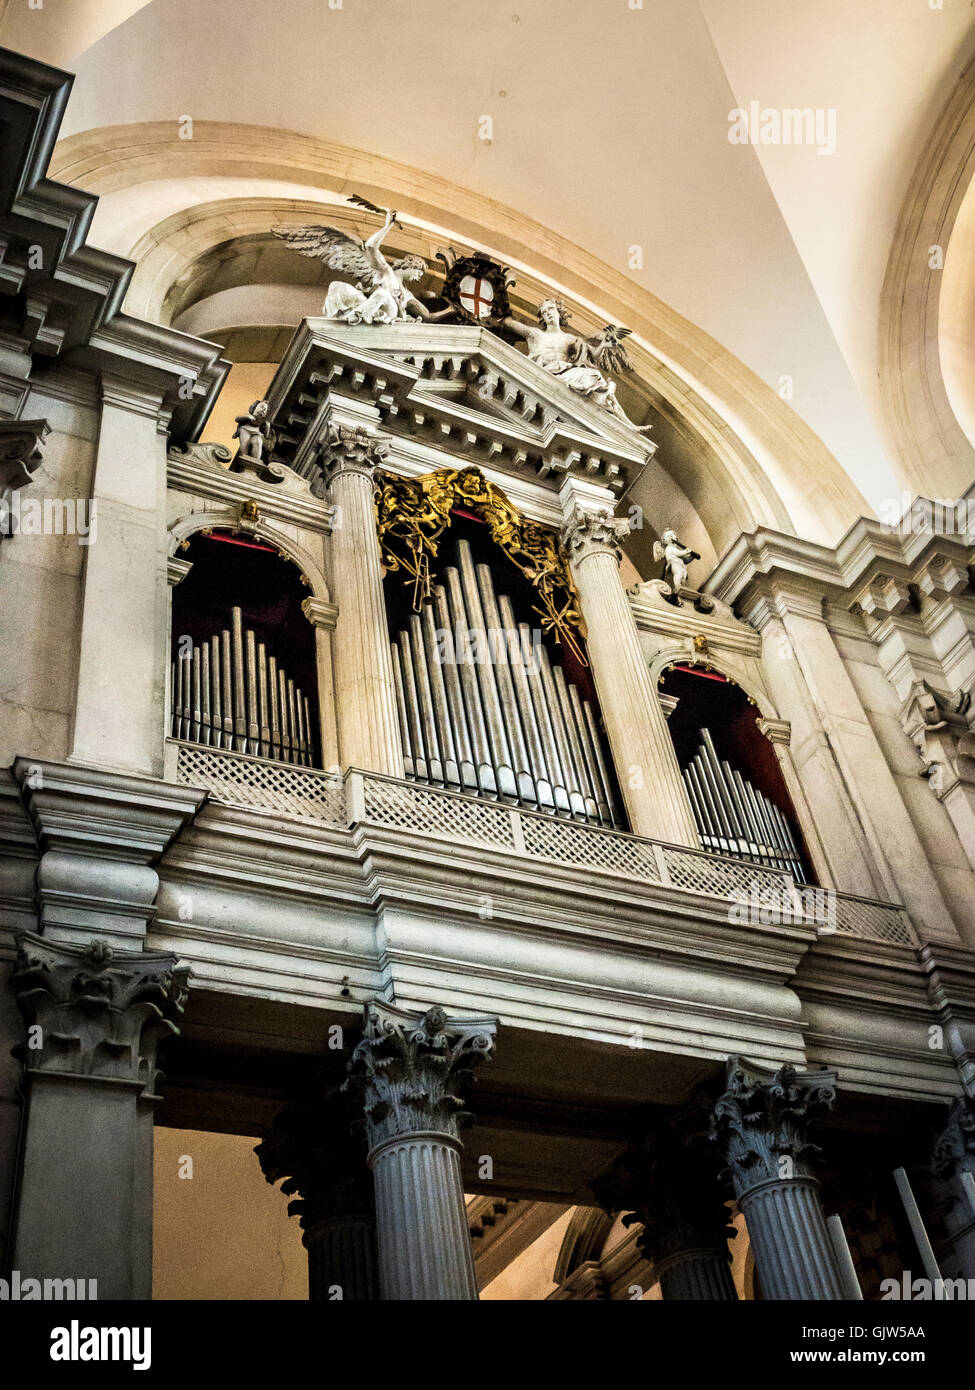 The organ loft in the church of San Giorgio Maggiore, Venice, Italy. - Stock Image